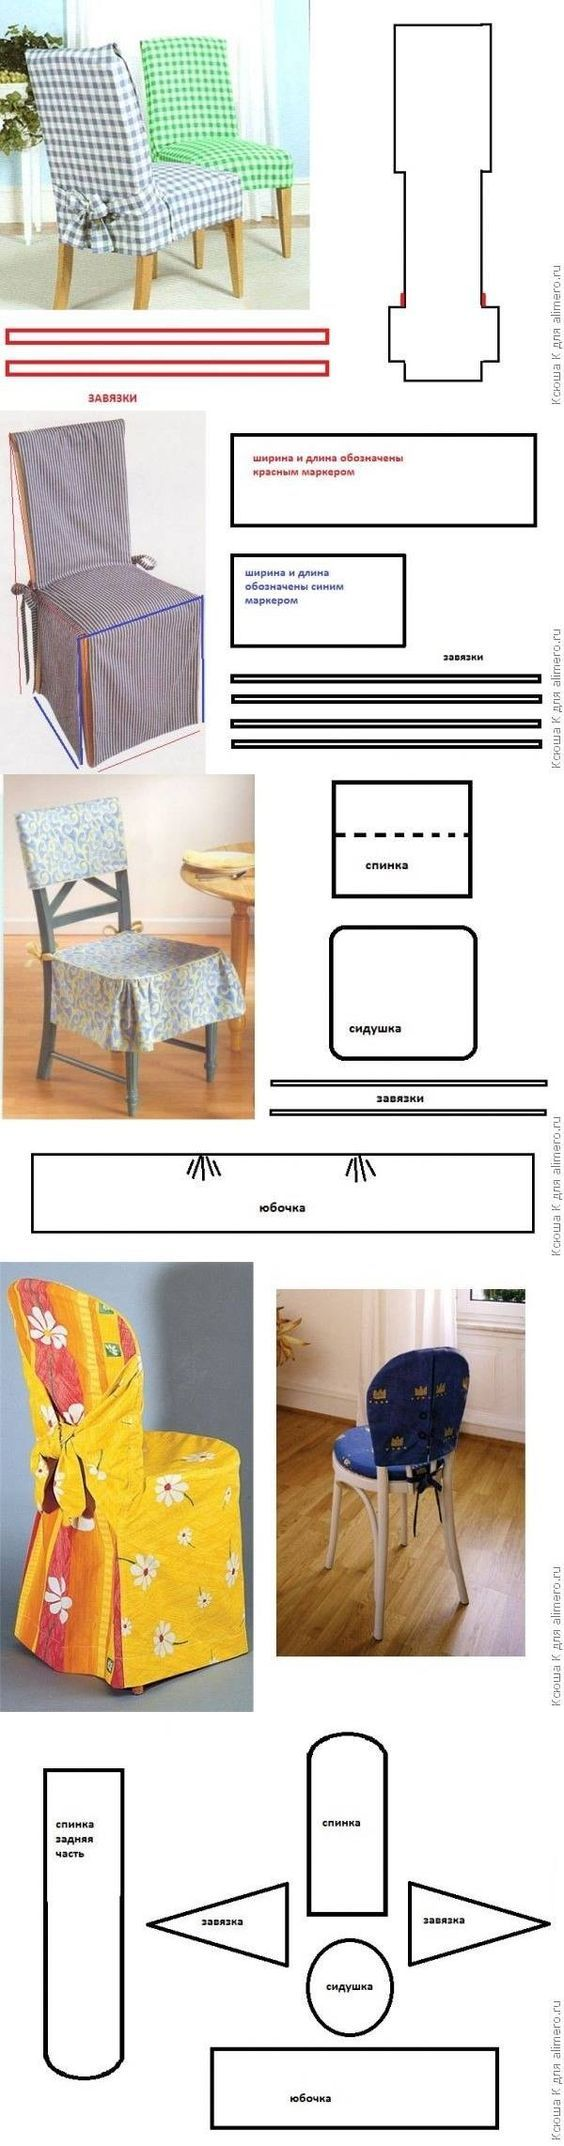 DIY Chair Covers DIY Chair Covers: